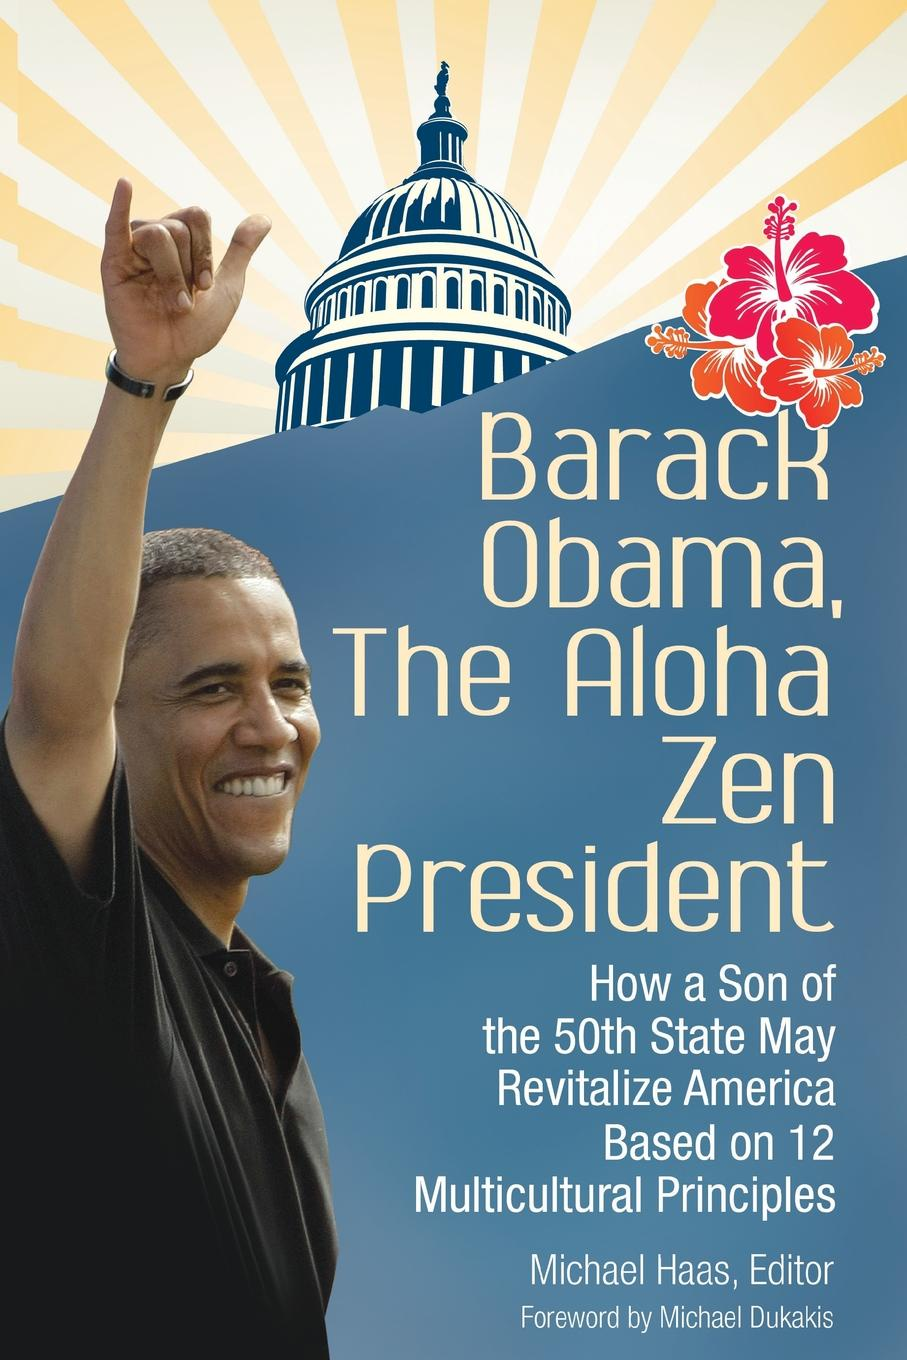 Barack Obama, The Aloha Zen President. How a Son of the 50th State May Revitalize America Based on 12 Multicultural Principles barack obama the wit and wisdom of barack obama a book of quotations